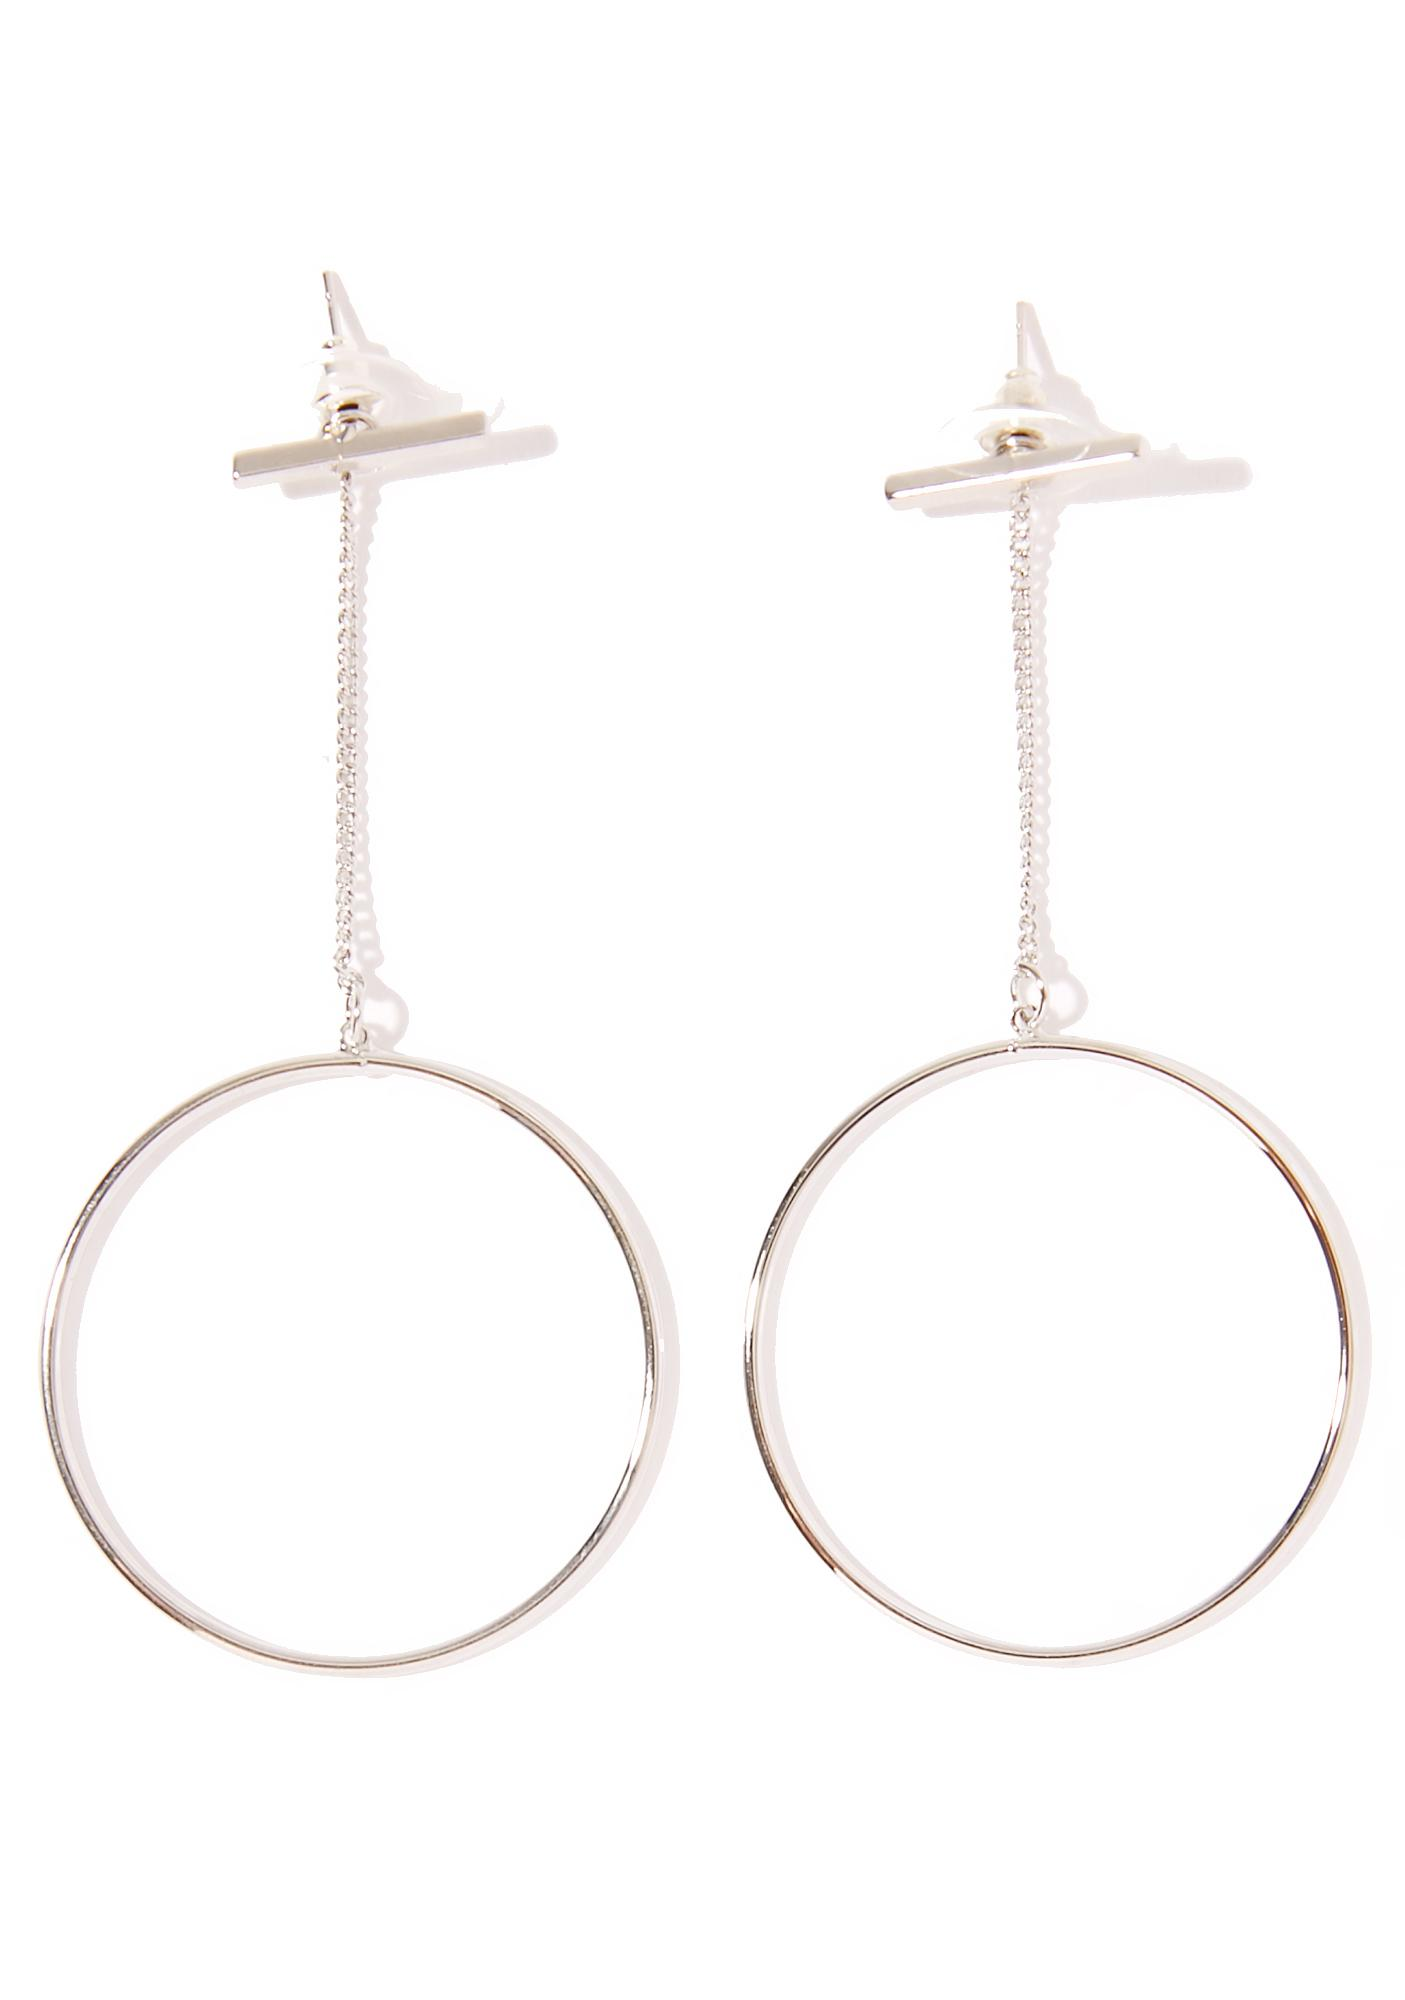 Winner's Circle Silver Dangle Earrings